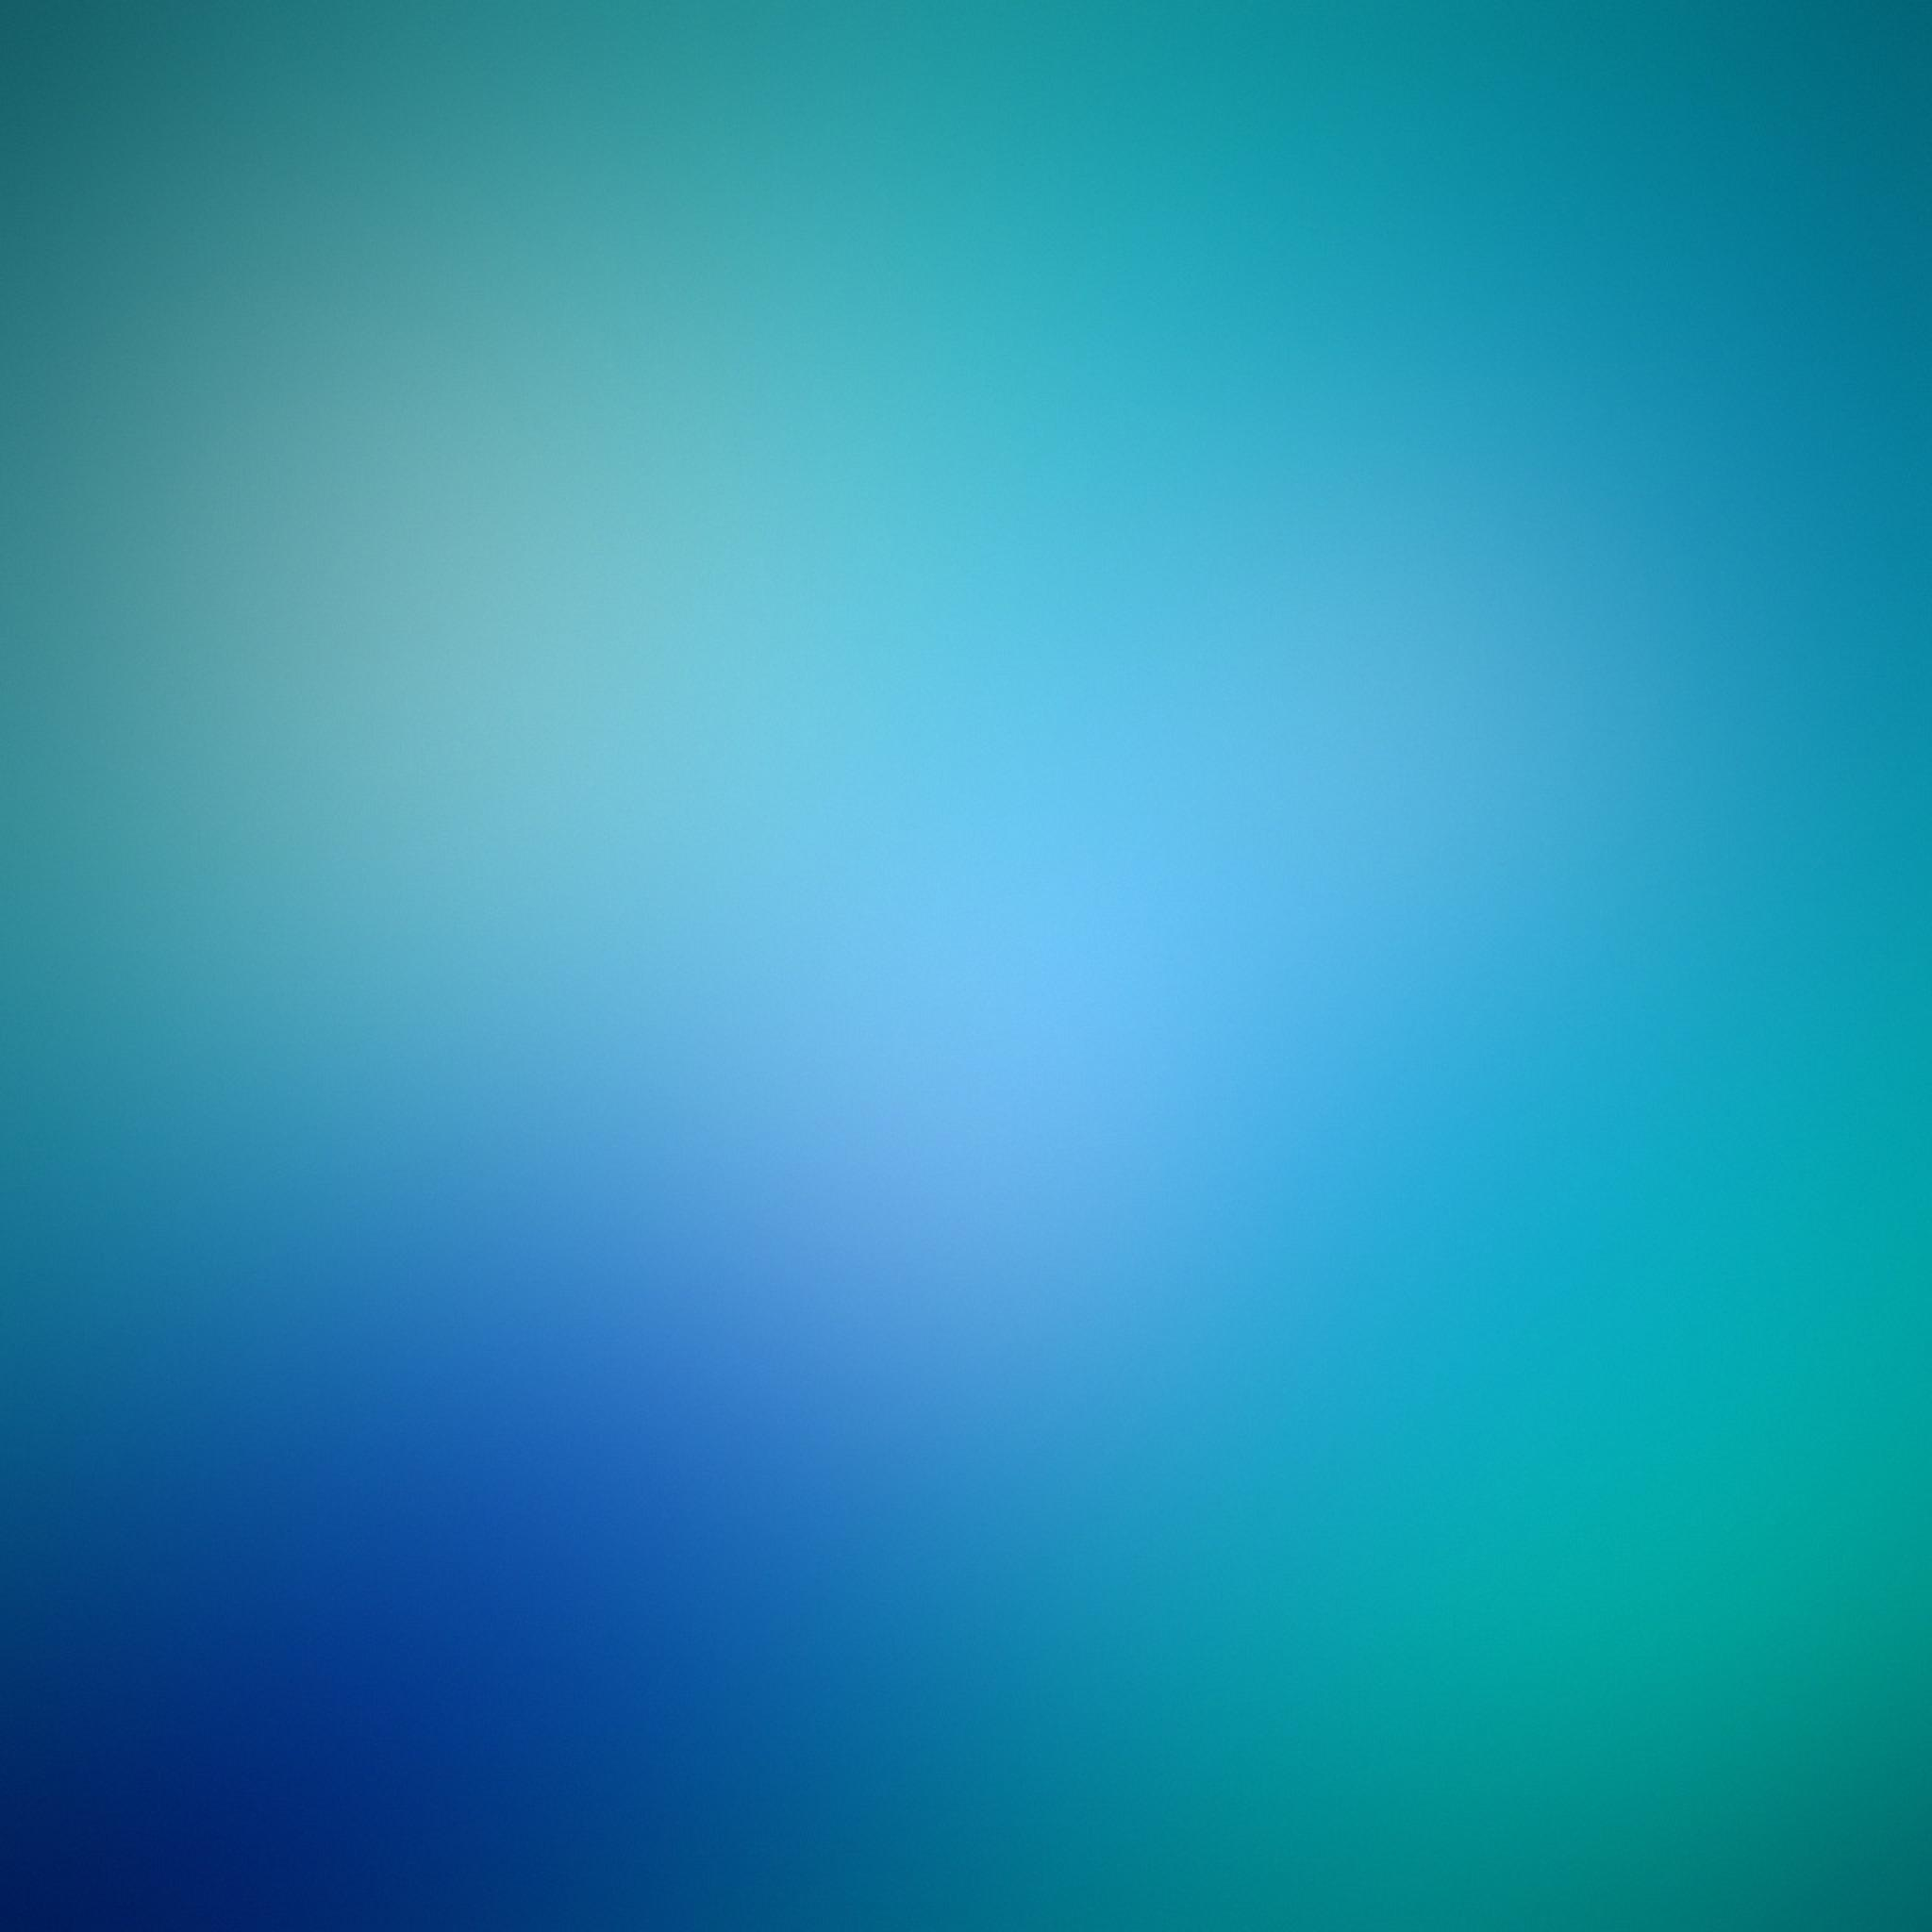 Solid Neon Background wallpaper Solid Neon Background hd wallpaper 2048x2048